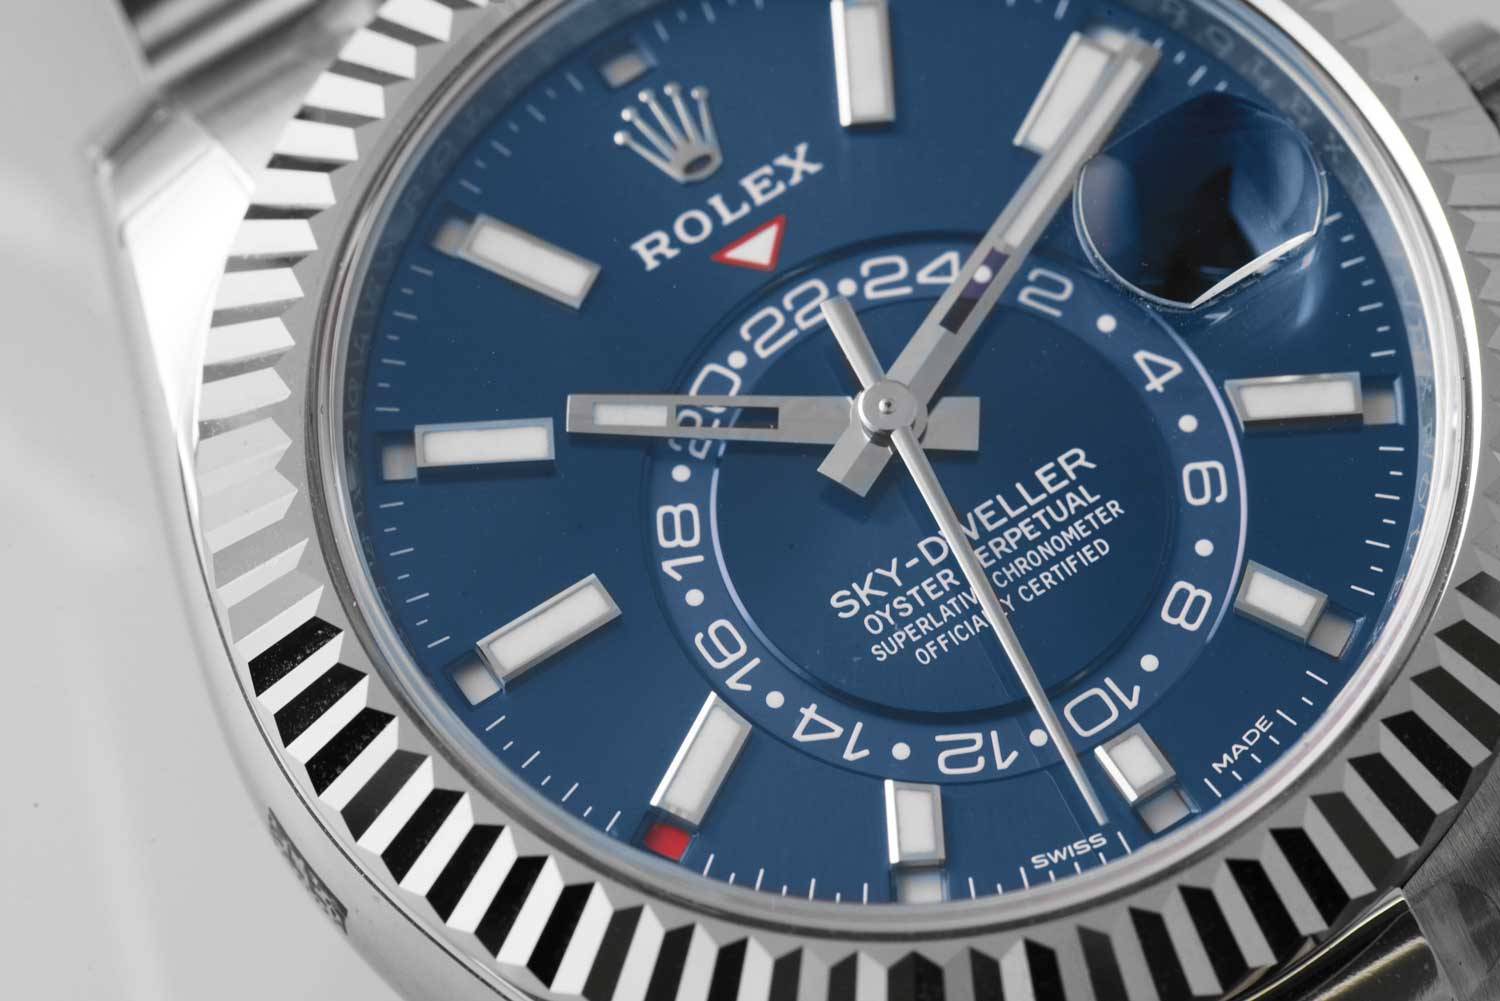 Oyster Perpetual Sky-Dweller (Reference 326934) in White Rolesor with a bright blue dial and an Oyster bracelet (©Revolution)